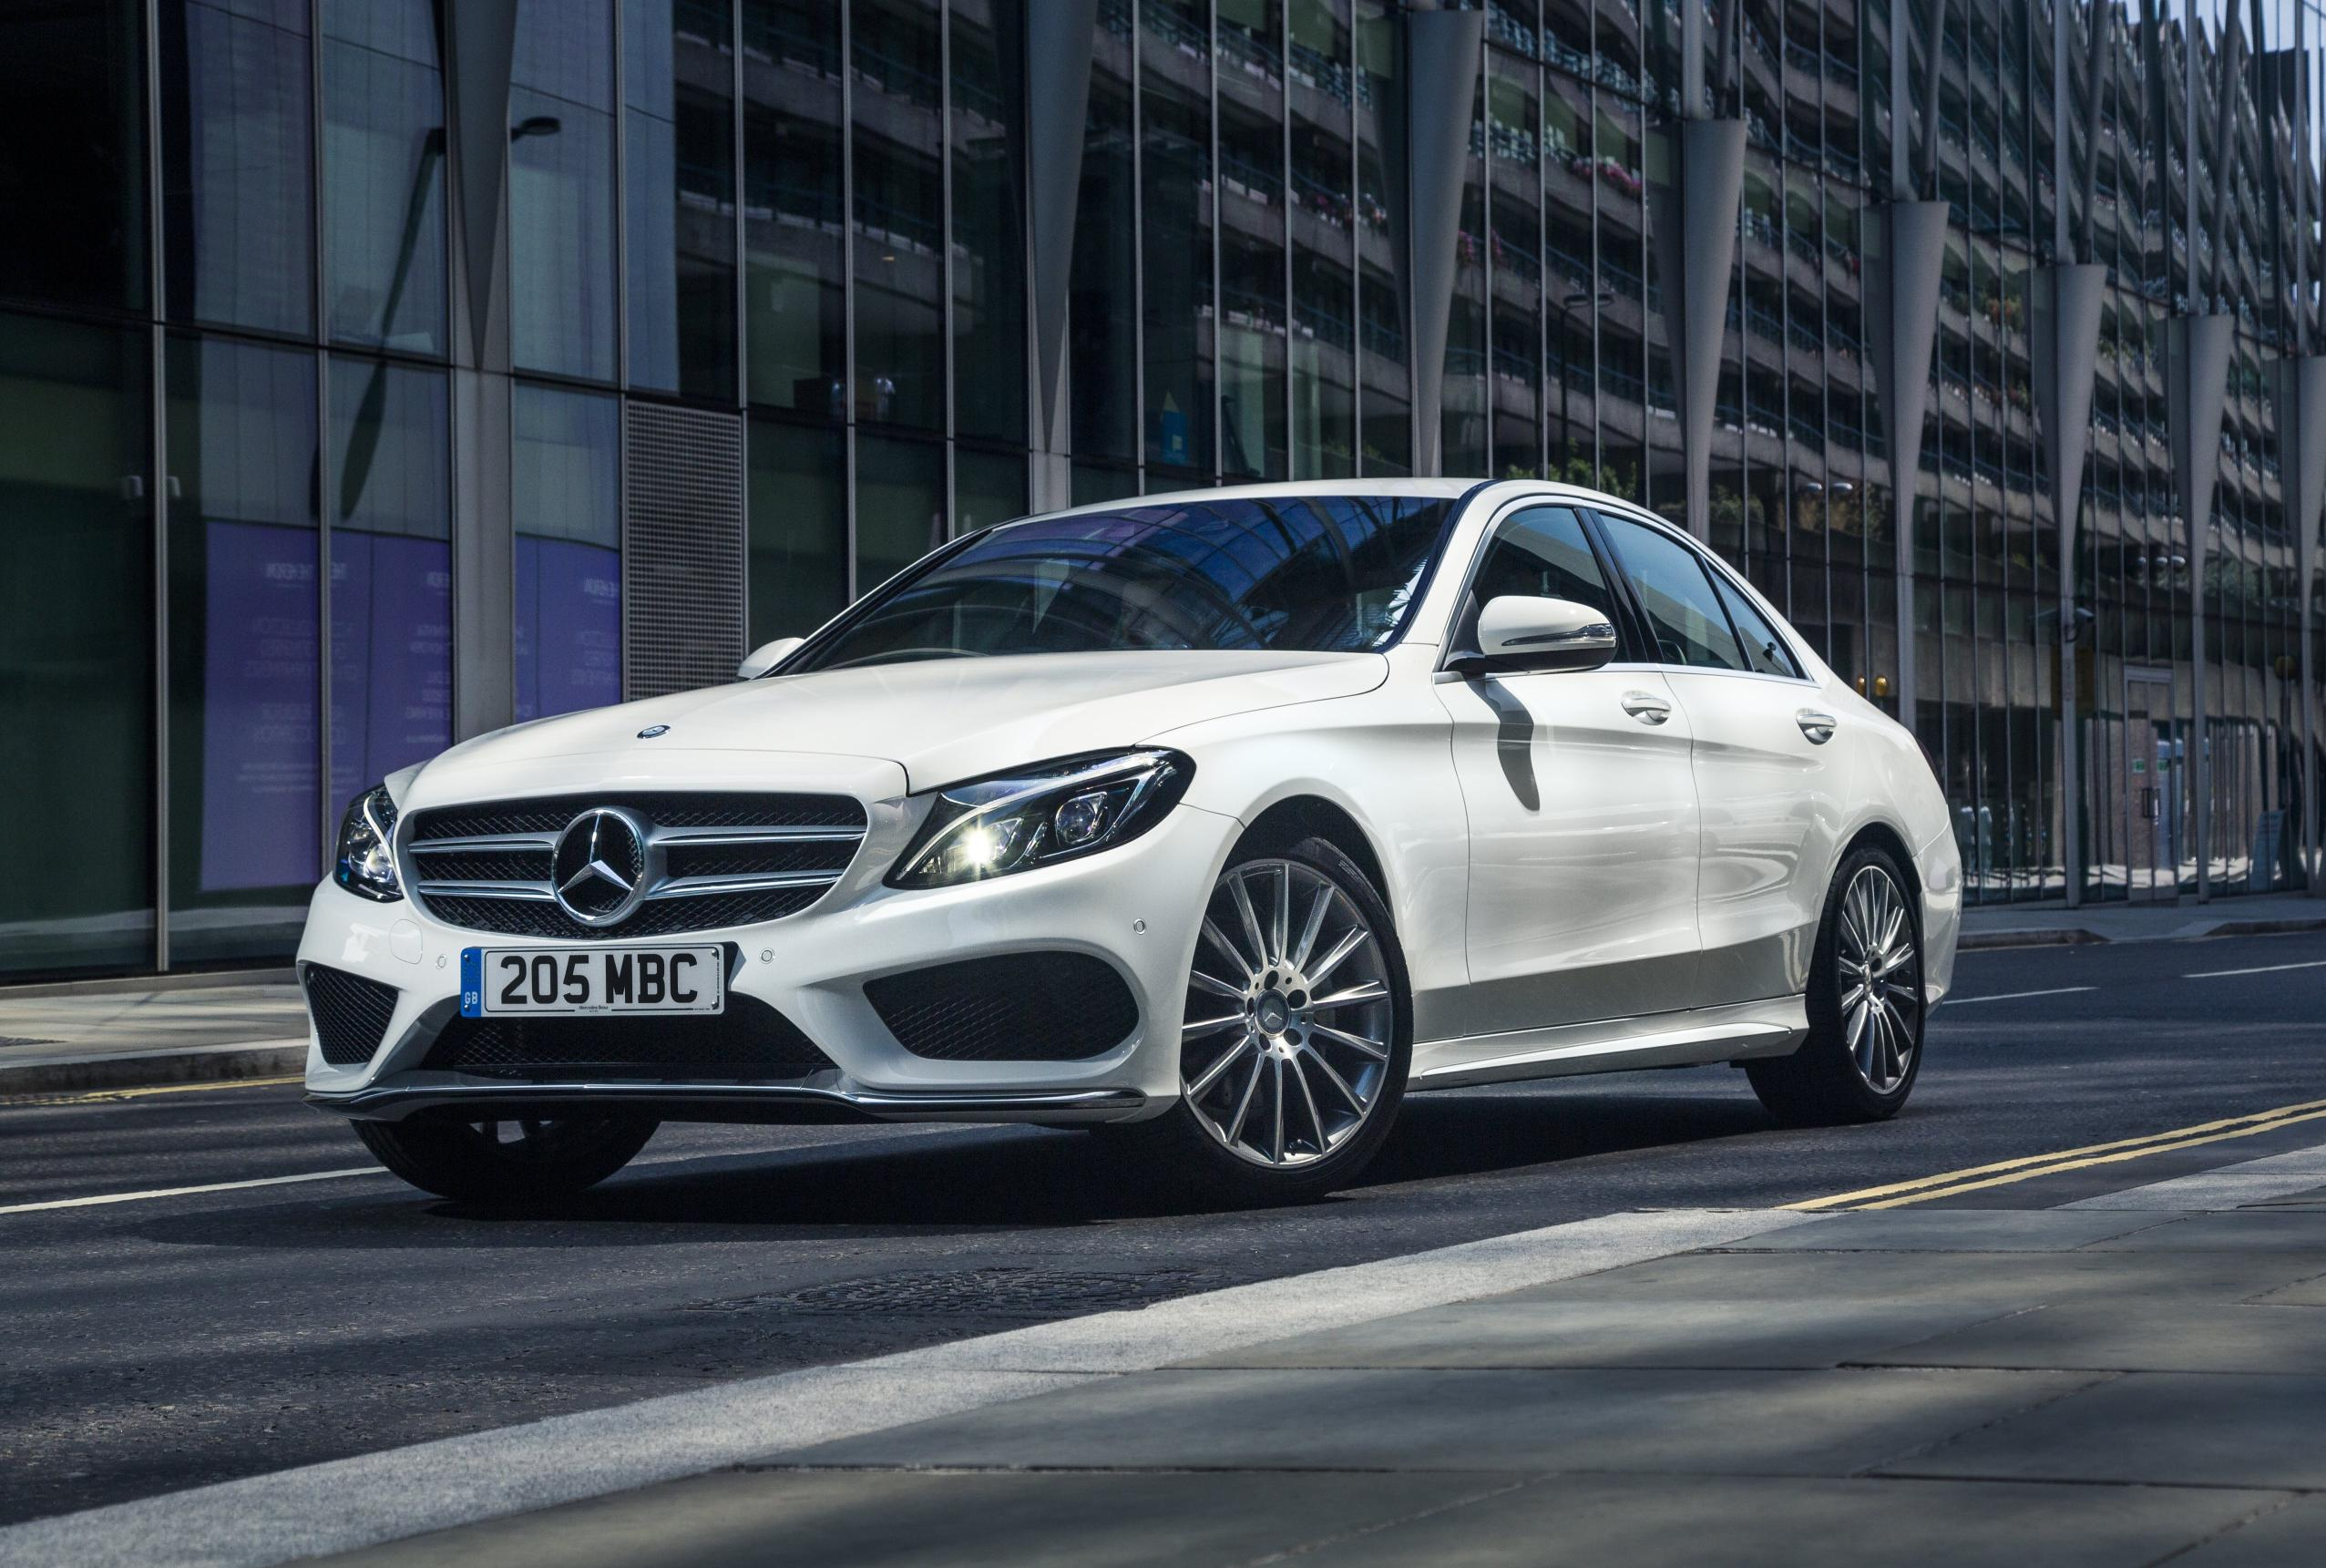 2015 mercedes benz c class launch date revealed - Mercedes c class coupe 2014 ...